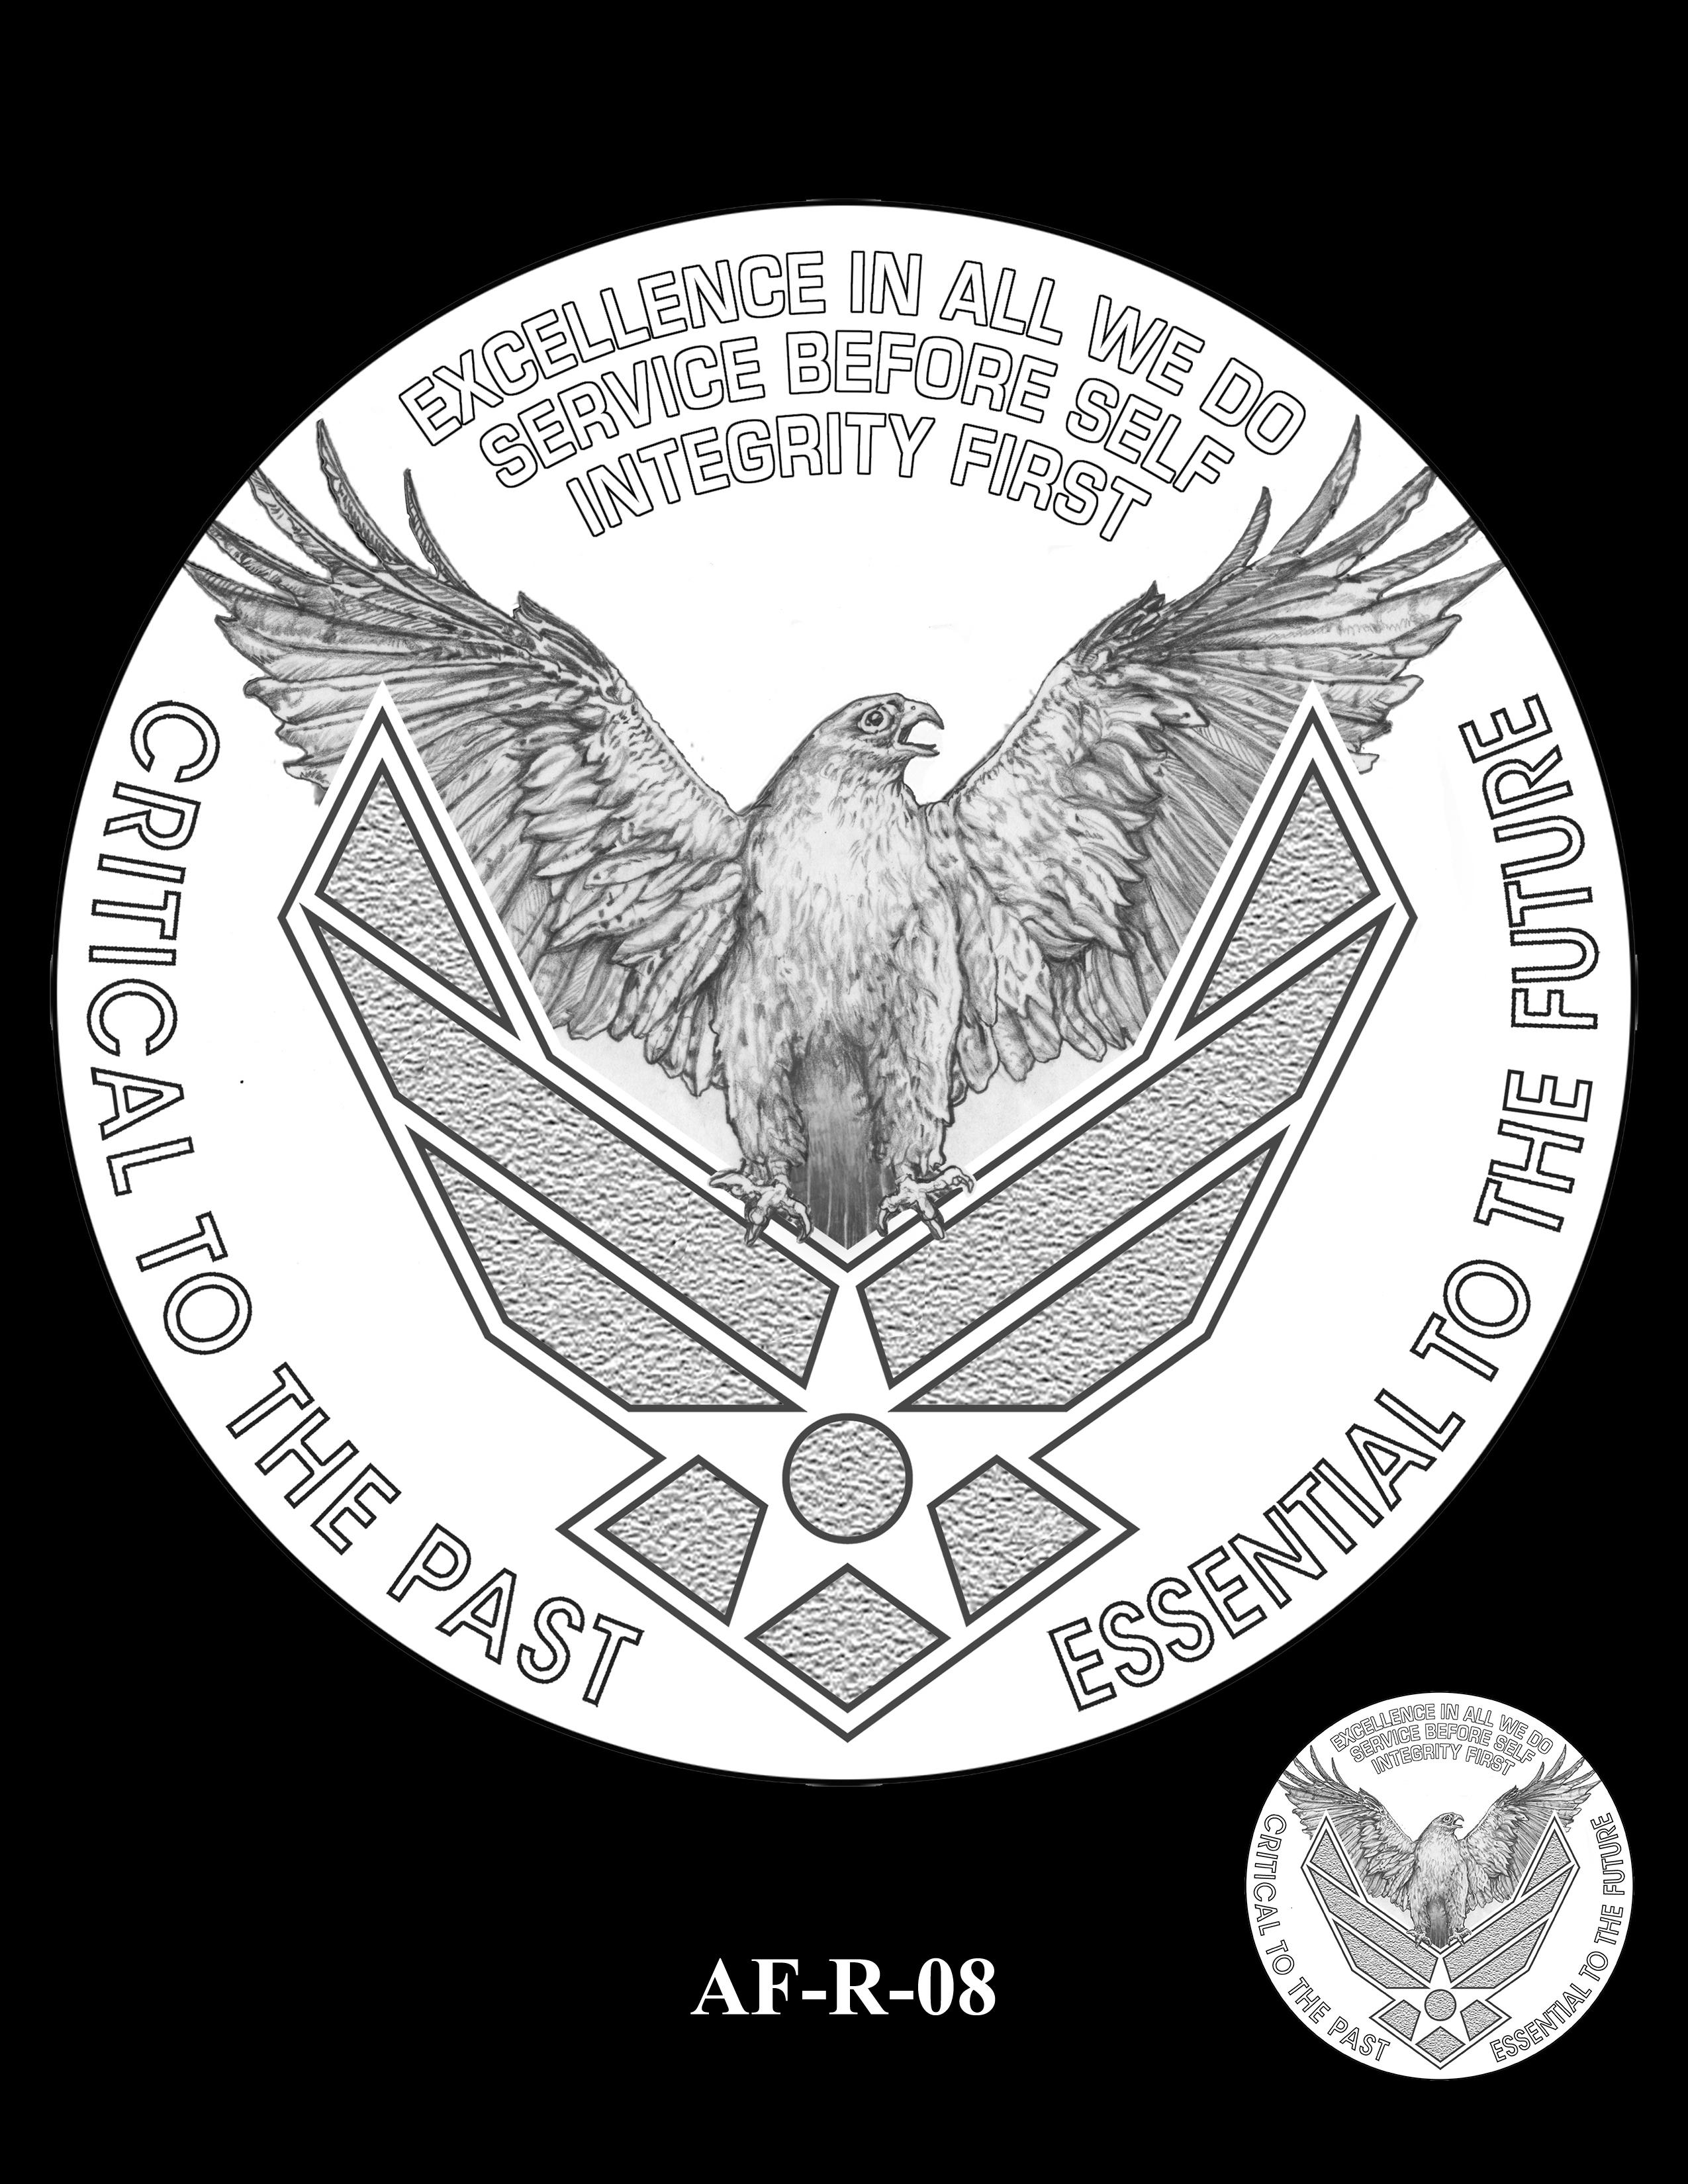 AF-R-08 -- Armed Forces Medal - Air Force